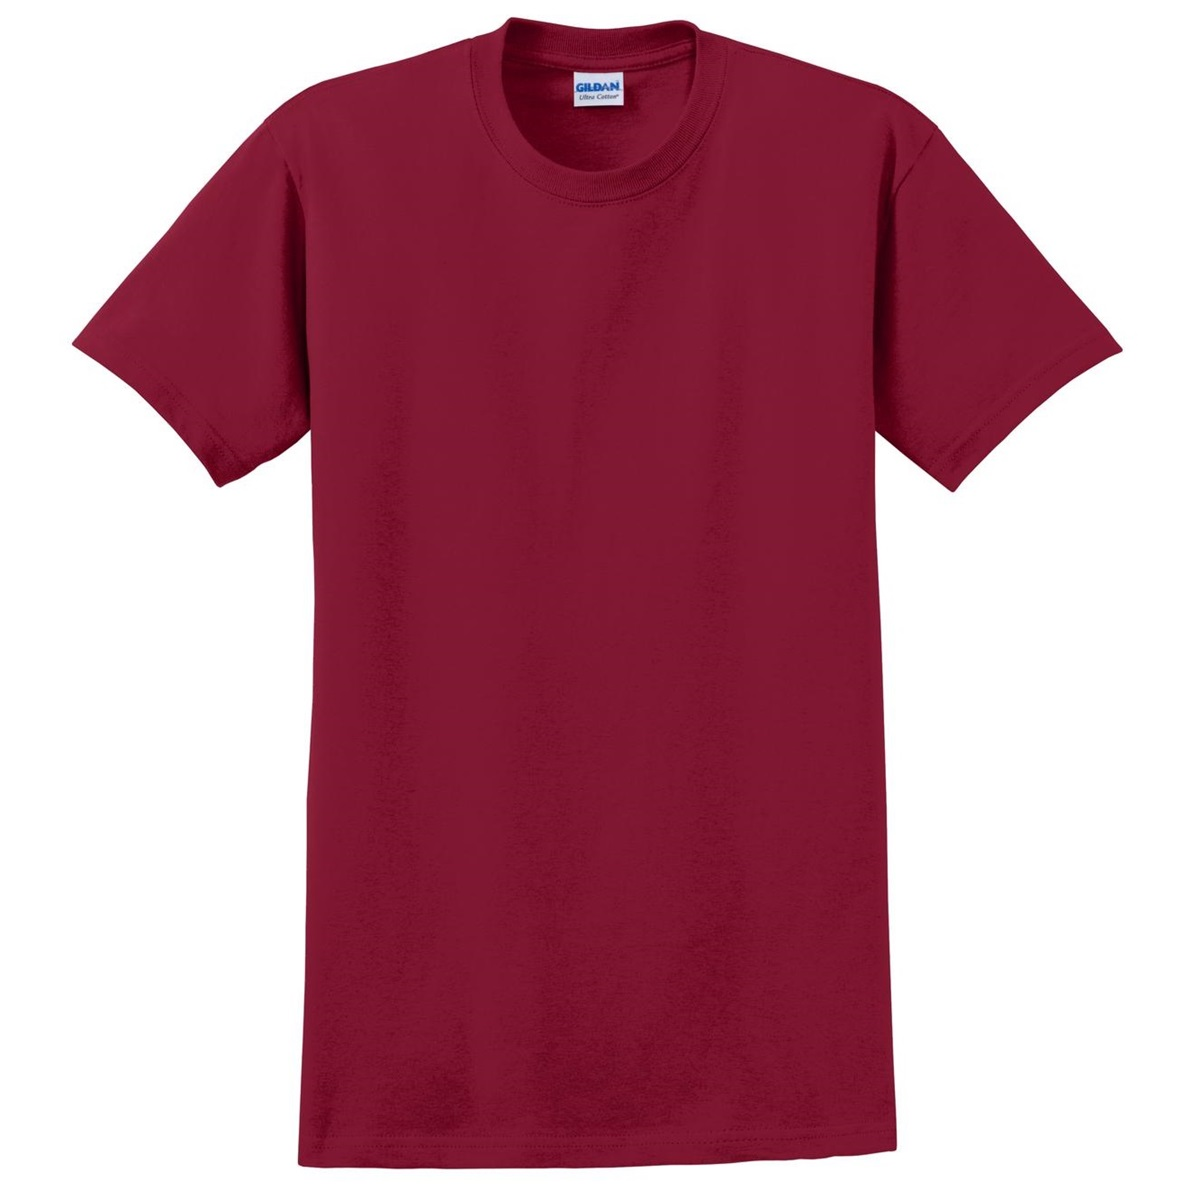 Gildan 2000 ultra cotton t shirt cardinal red for Cardinal color t shirts